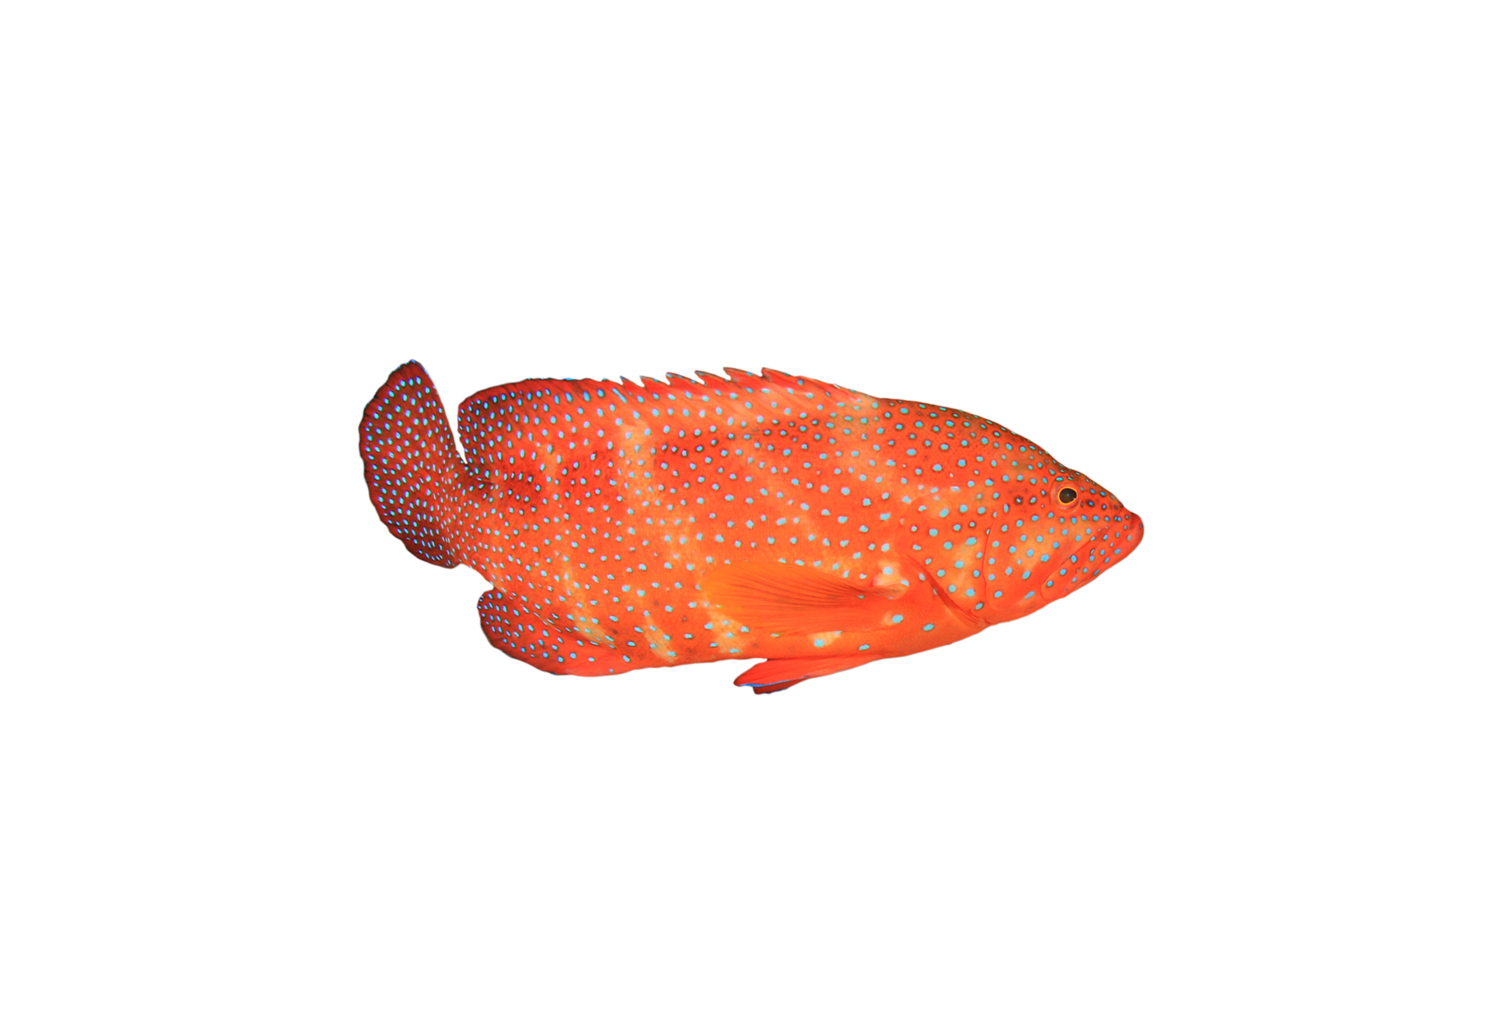 Coral Trout Quota per KG Lease